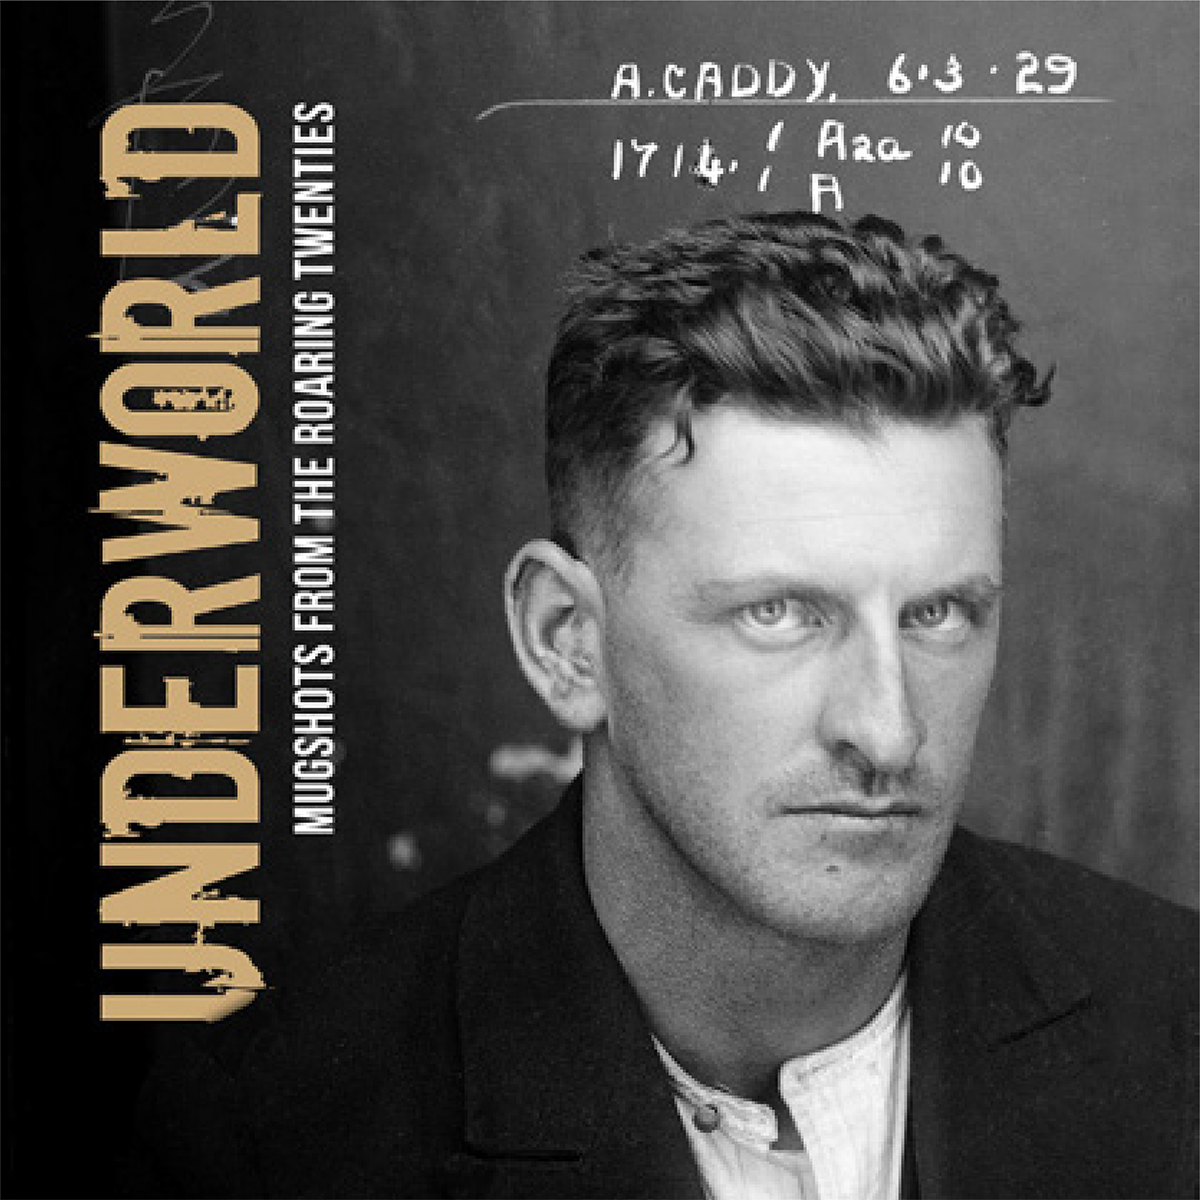 Underworld mugshots form the roaring 20s